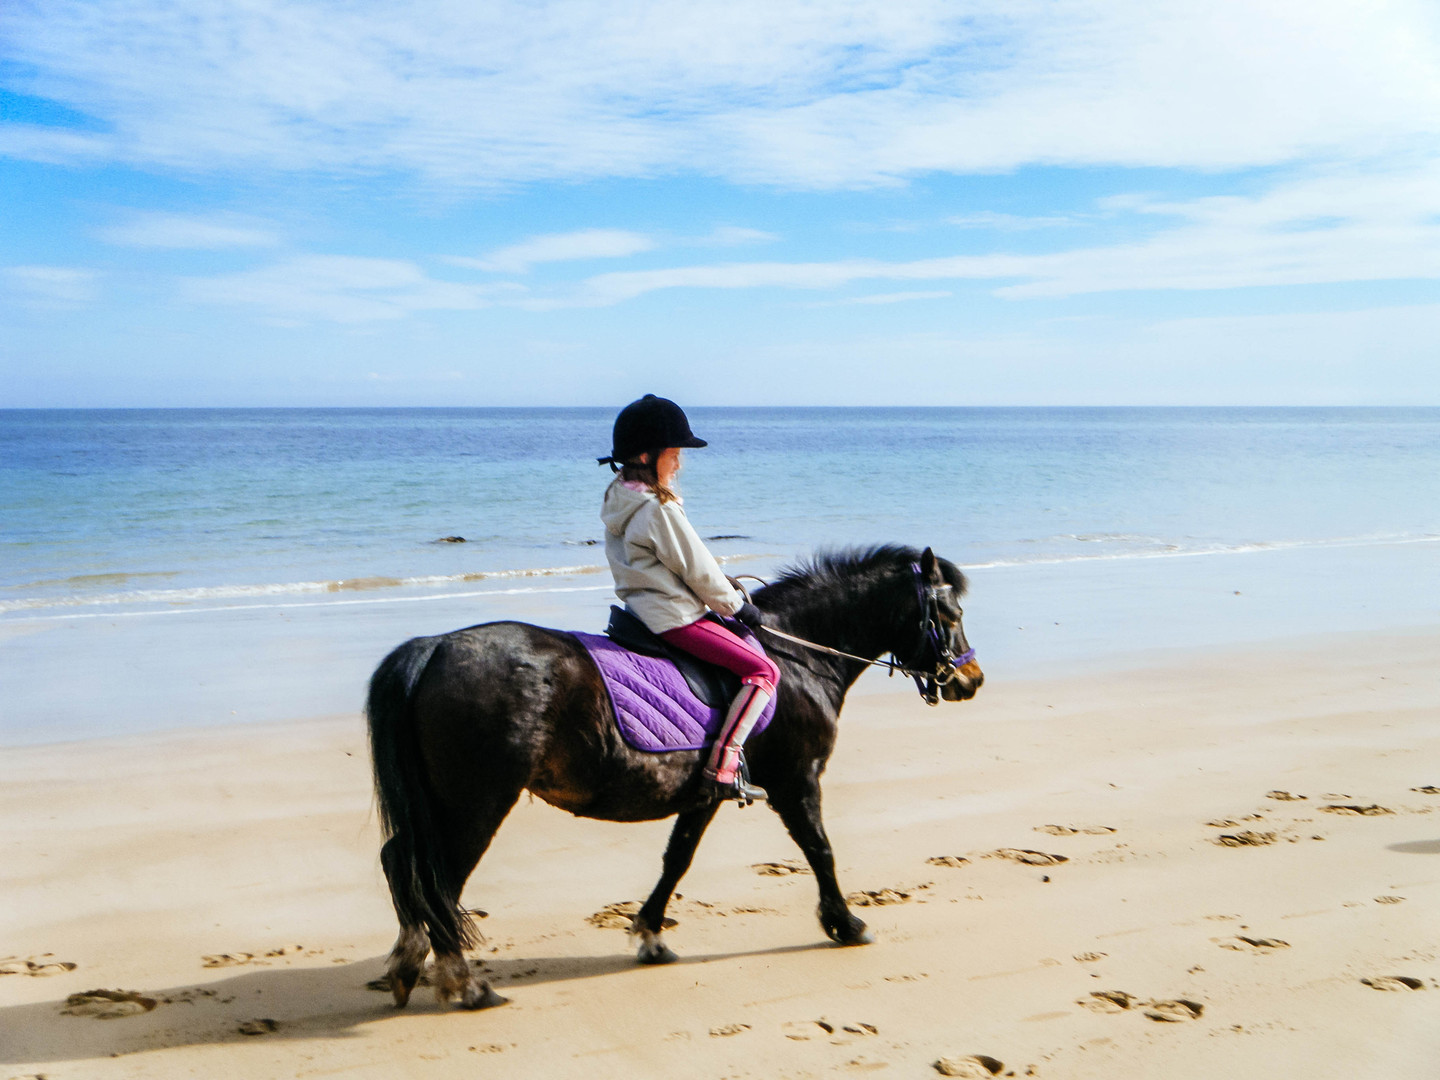 Pony rides on the beach